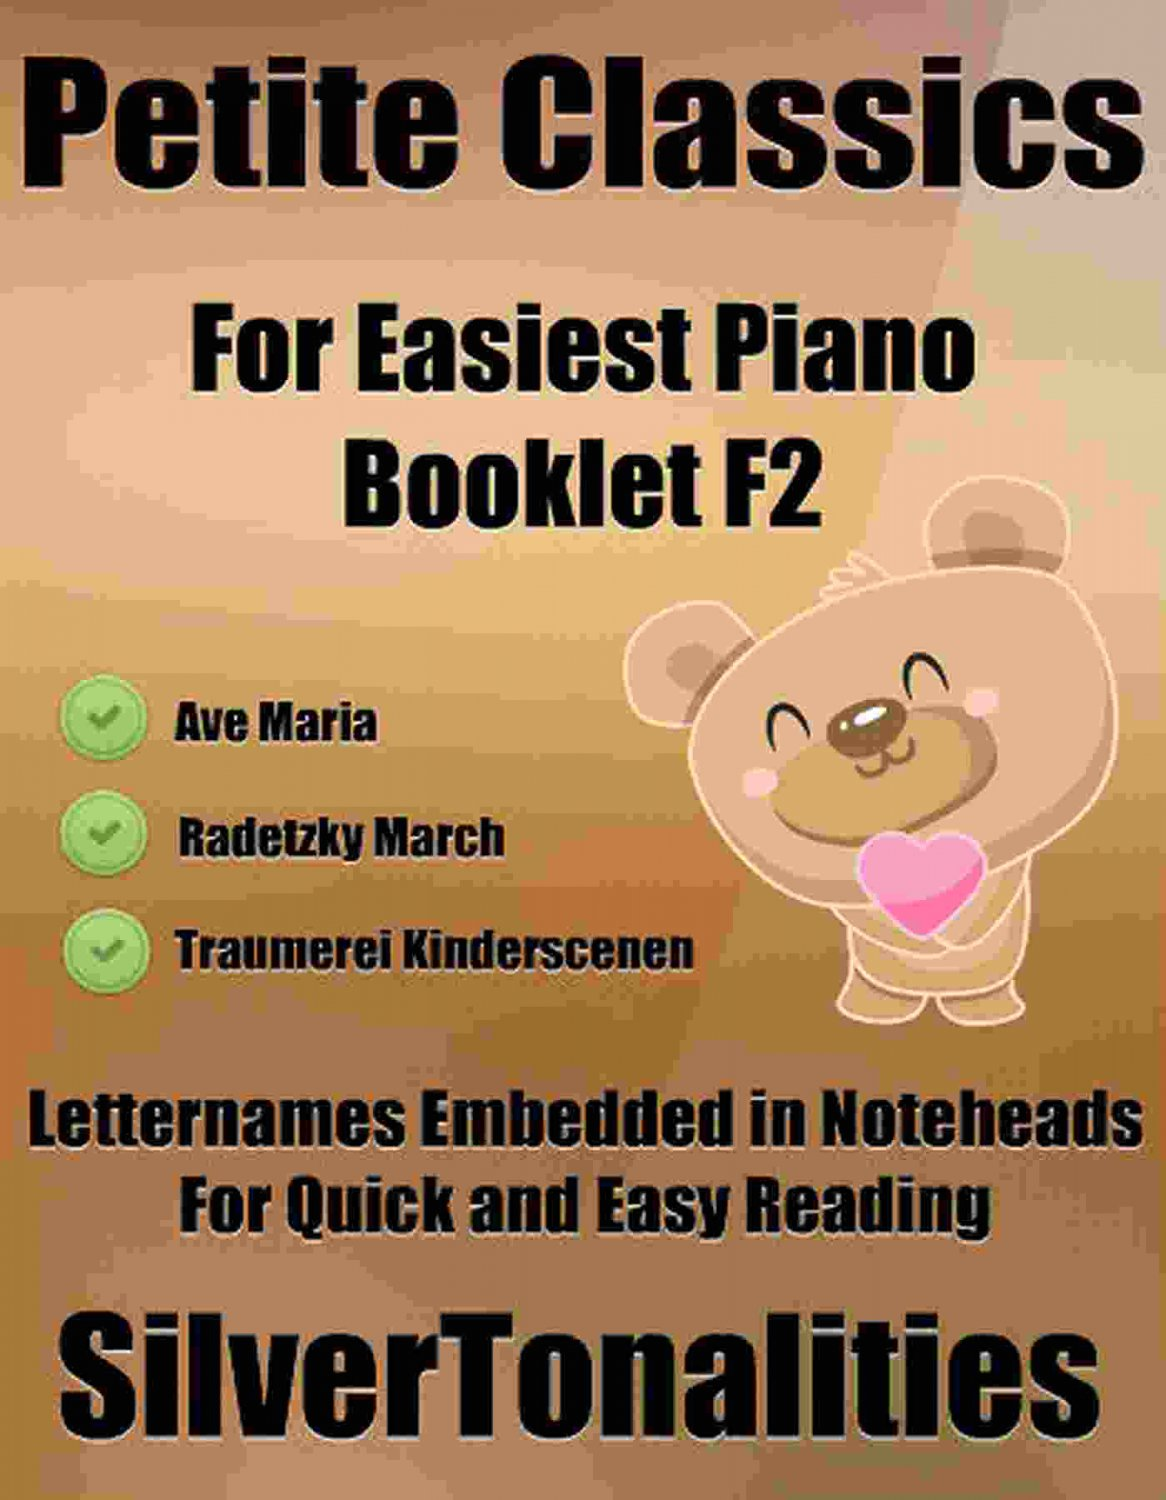 Petite Classics for Easiest Piano Booklet F2 PDF